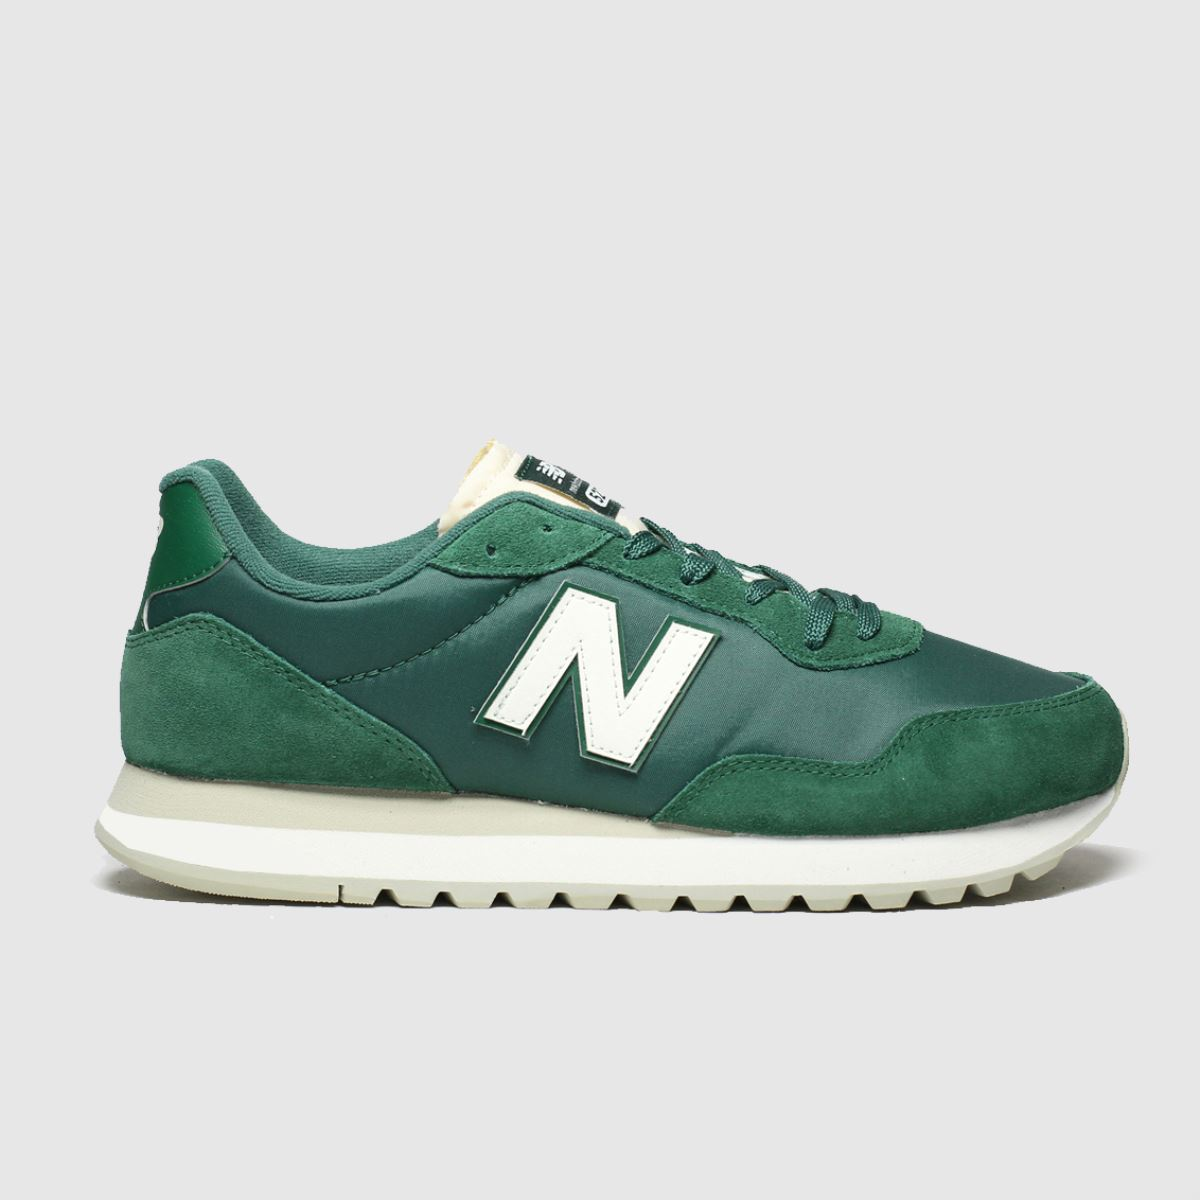 New Balance Green 527 Trainers